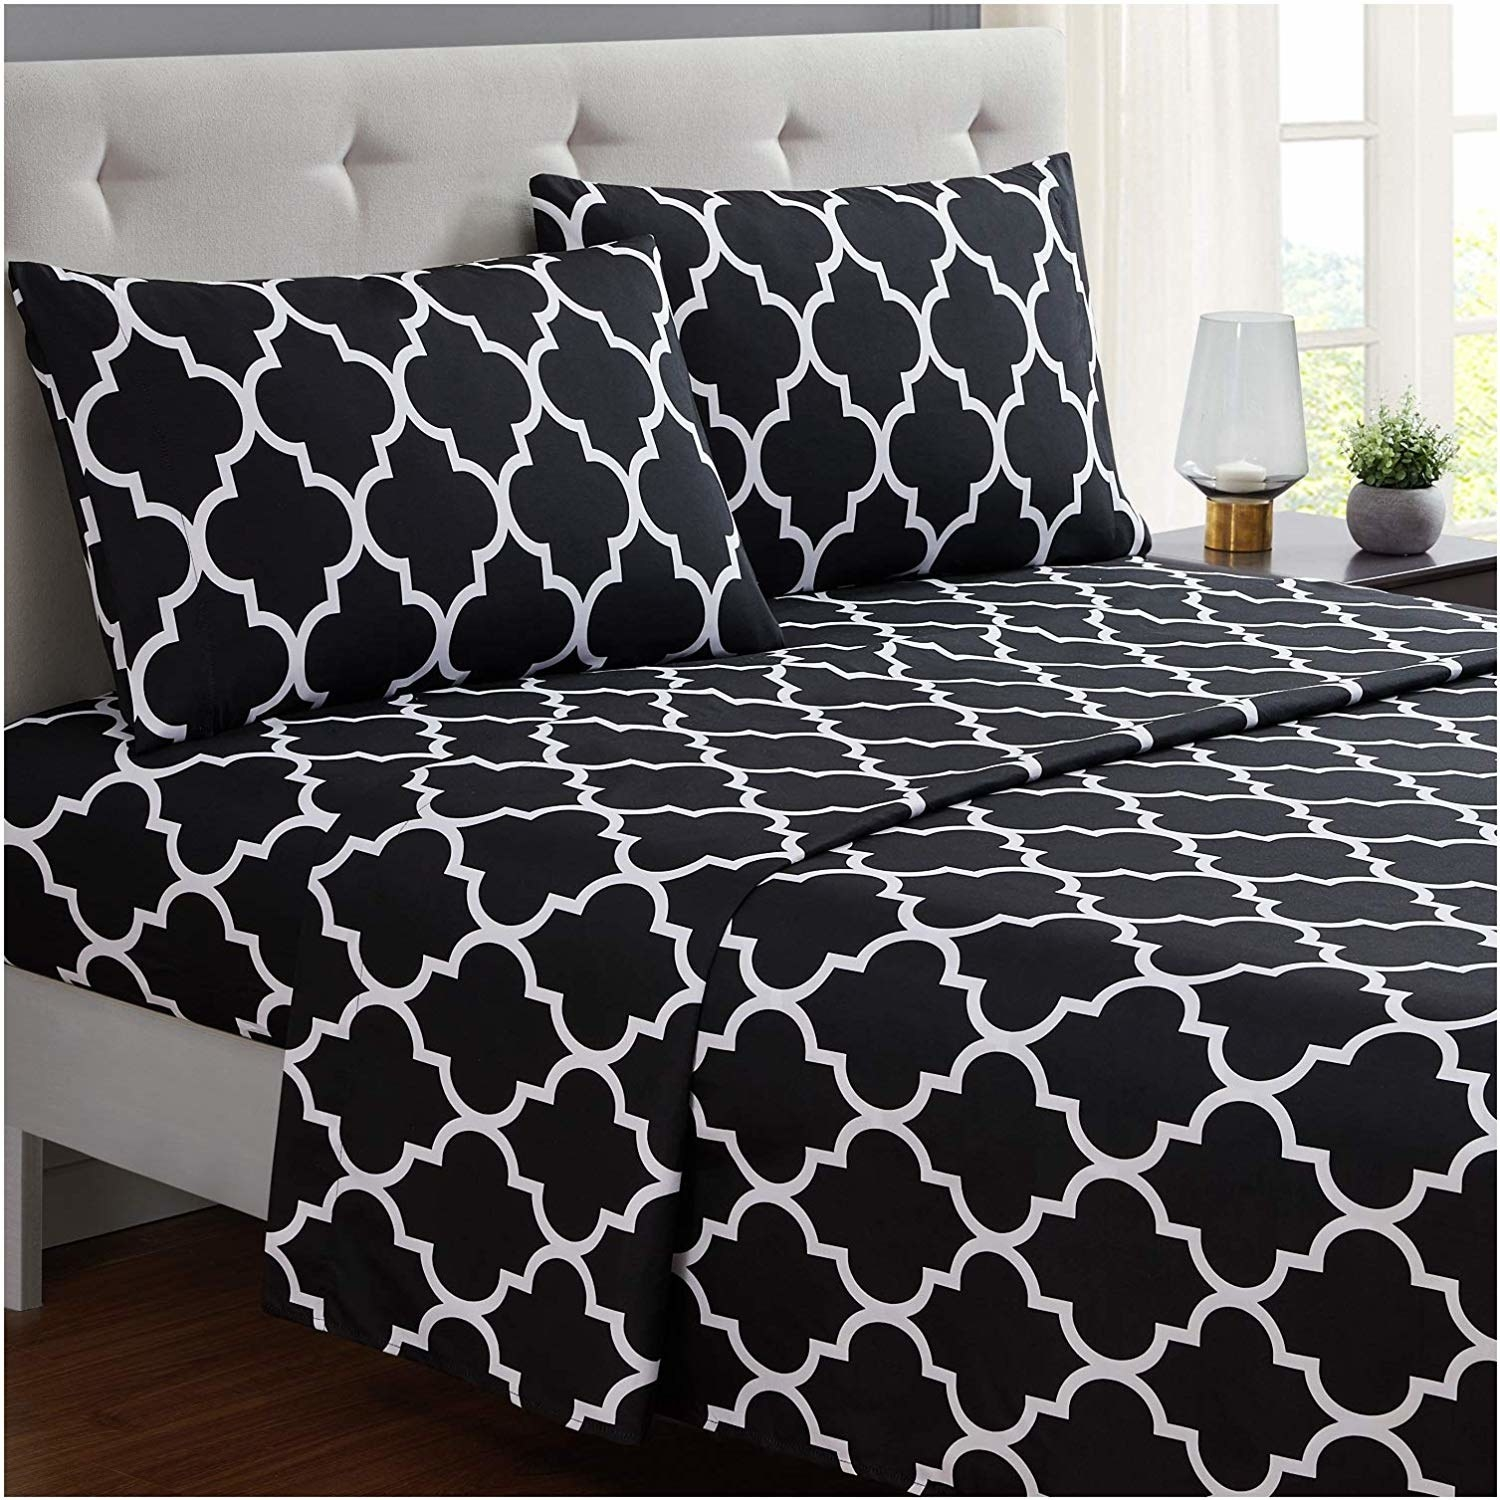 sheets on the bed along with the pillowcases. they're white and black.